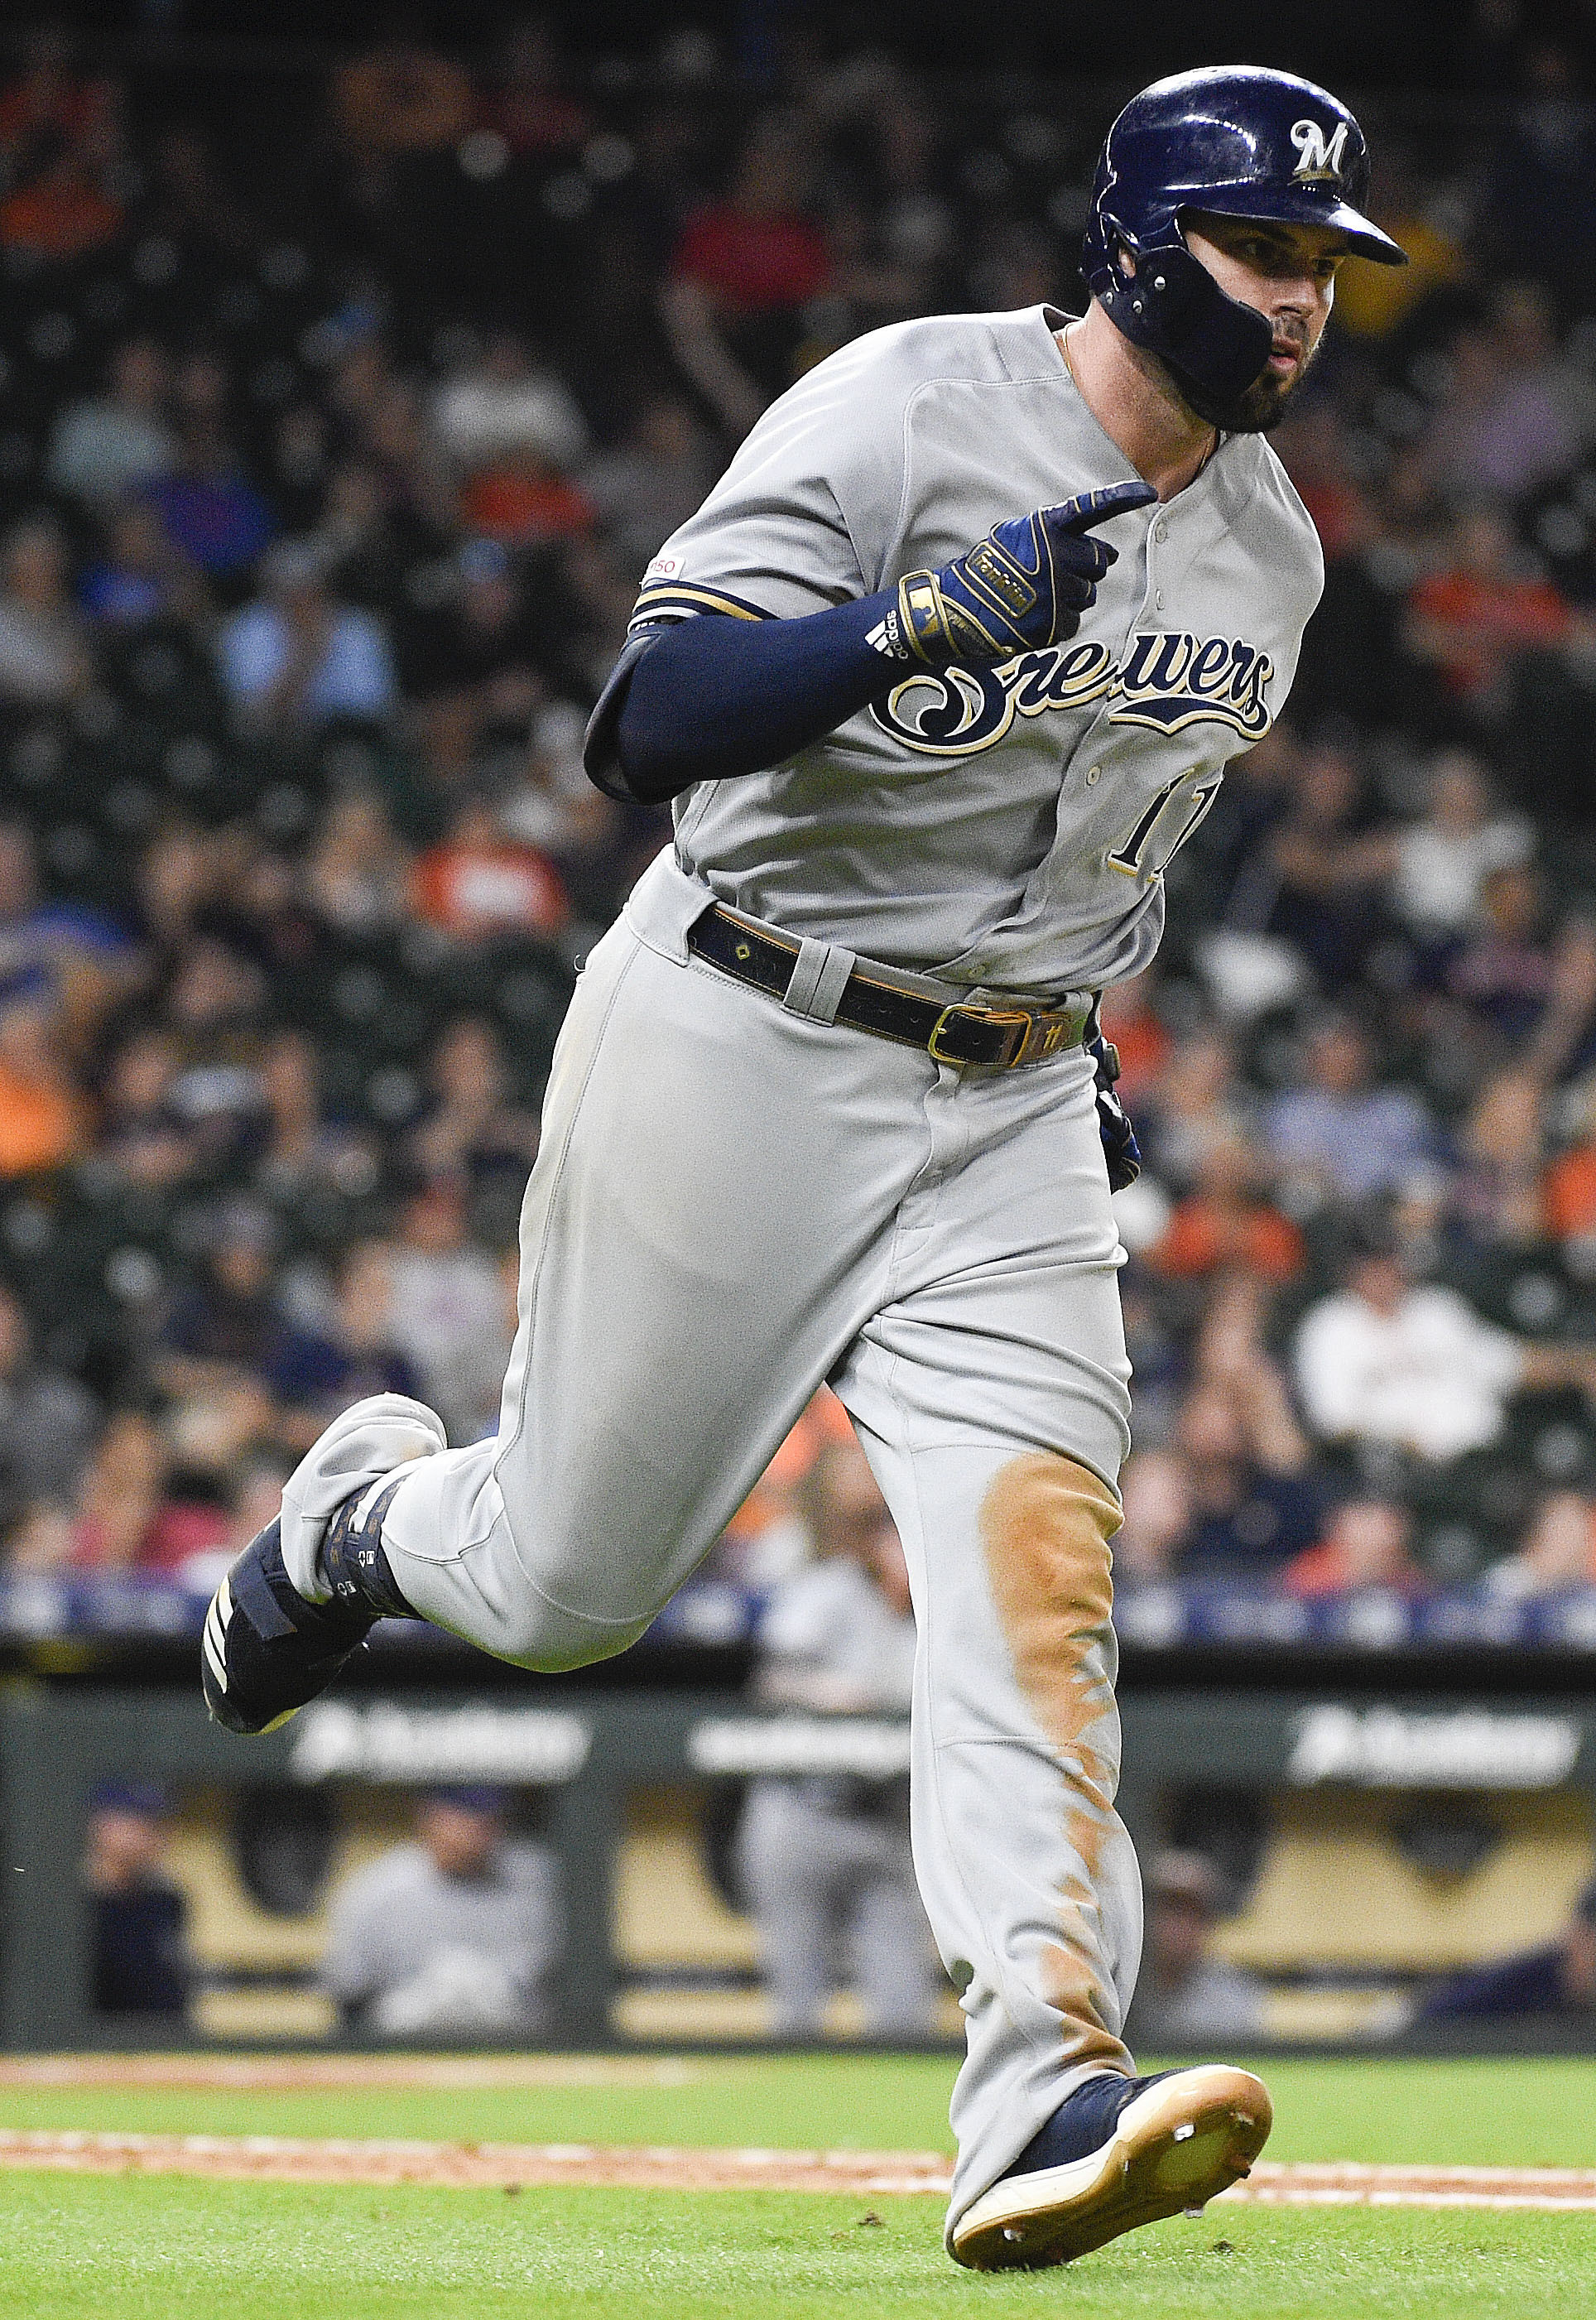 Moustakas hits 2-run HR in 14th as Brewers beat Astros 6-3